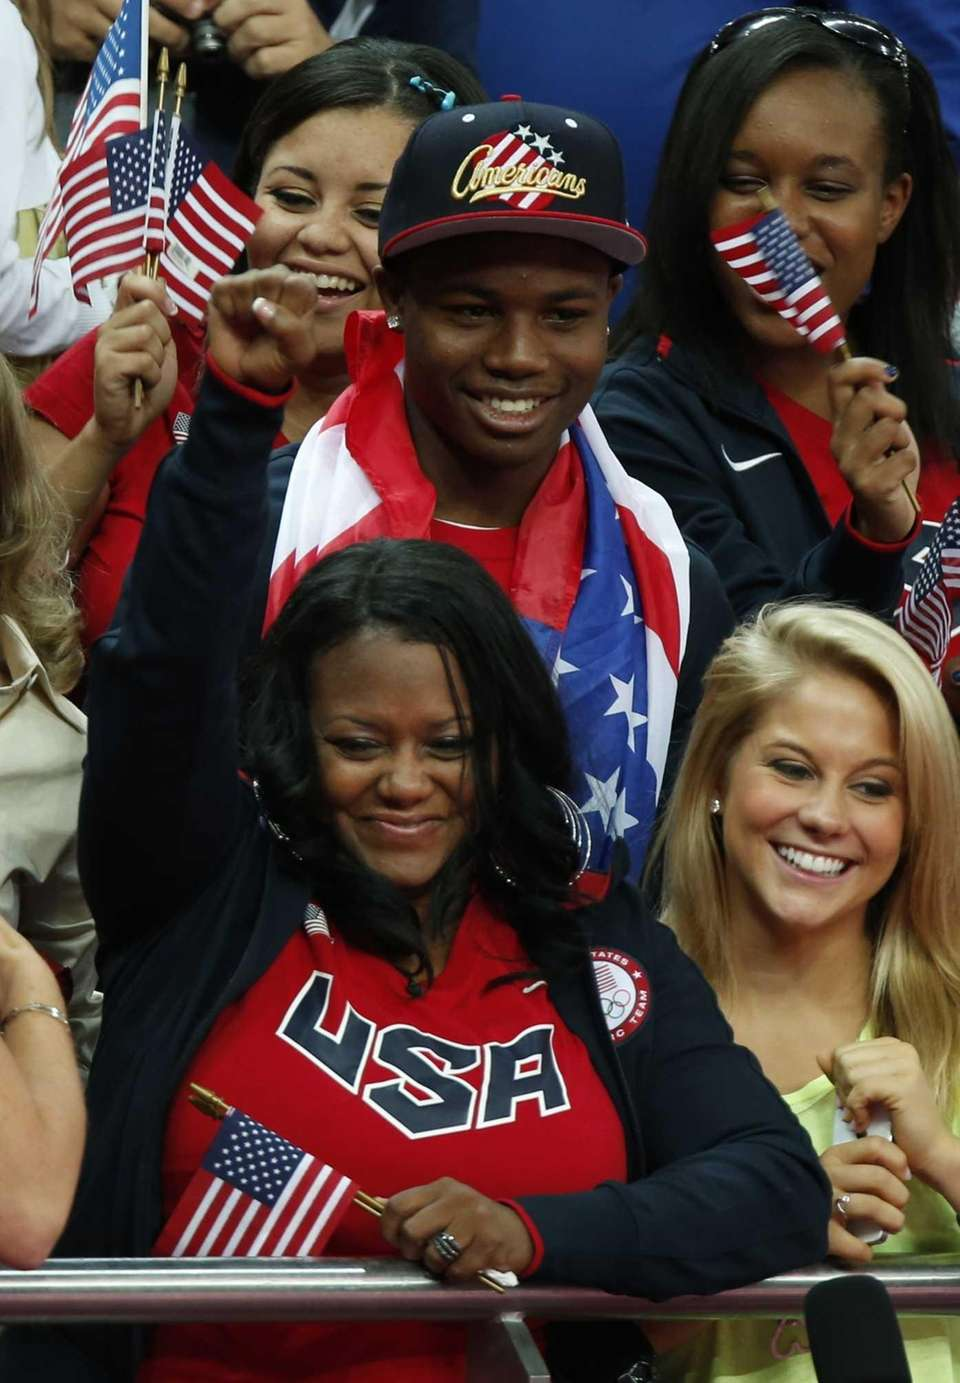 Natalie Hawkins, bottom left, mother of U.S. gymnast